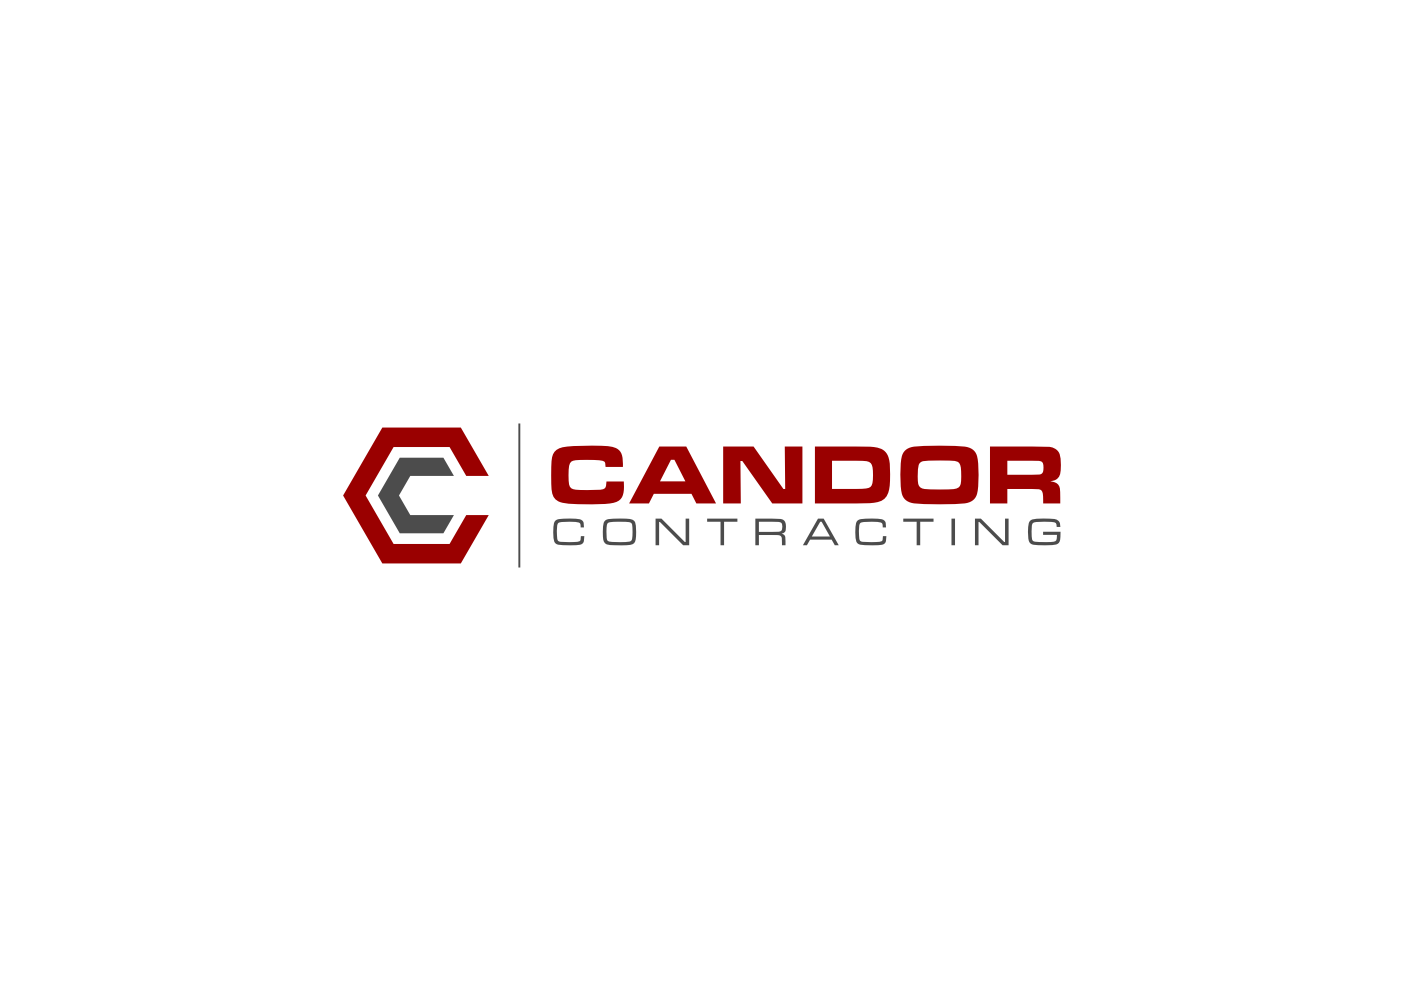 Logo Design by Ekarini Puspitasari - Entry No. 7 in the Logo Design Contest Unique Logo Design Wanted for Candor Contracting.